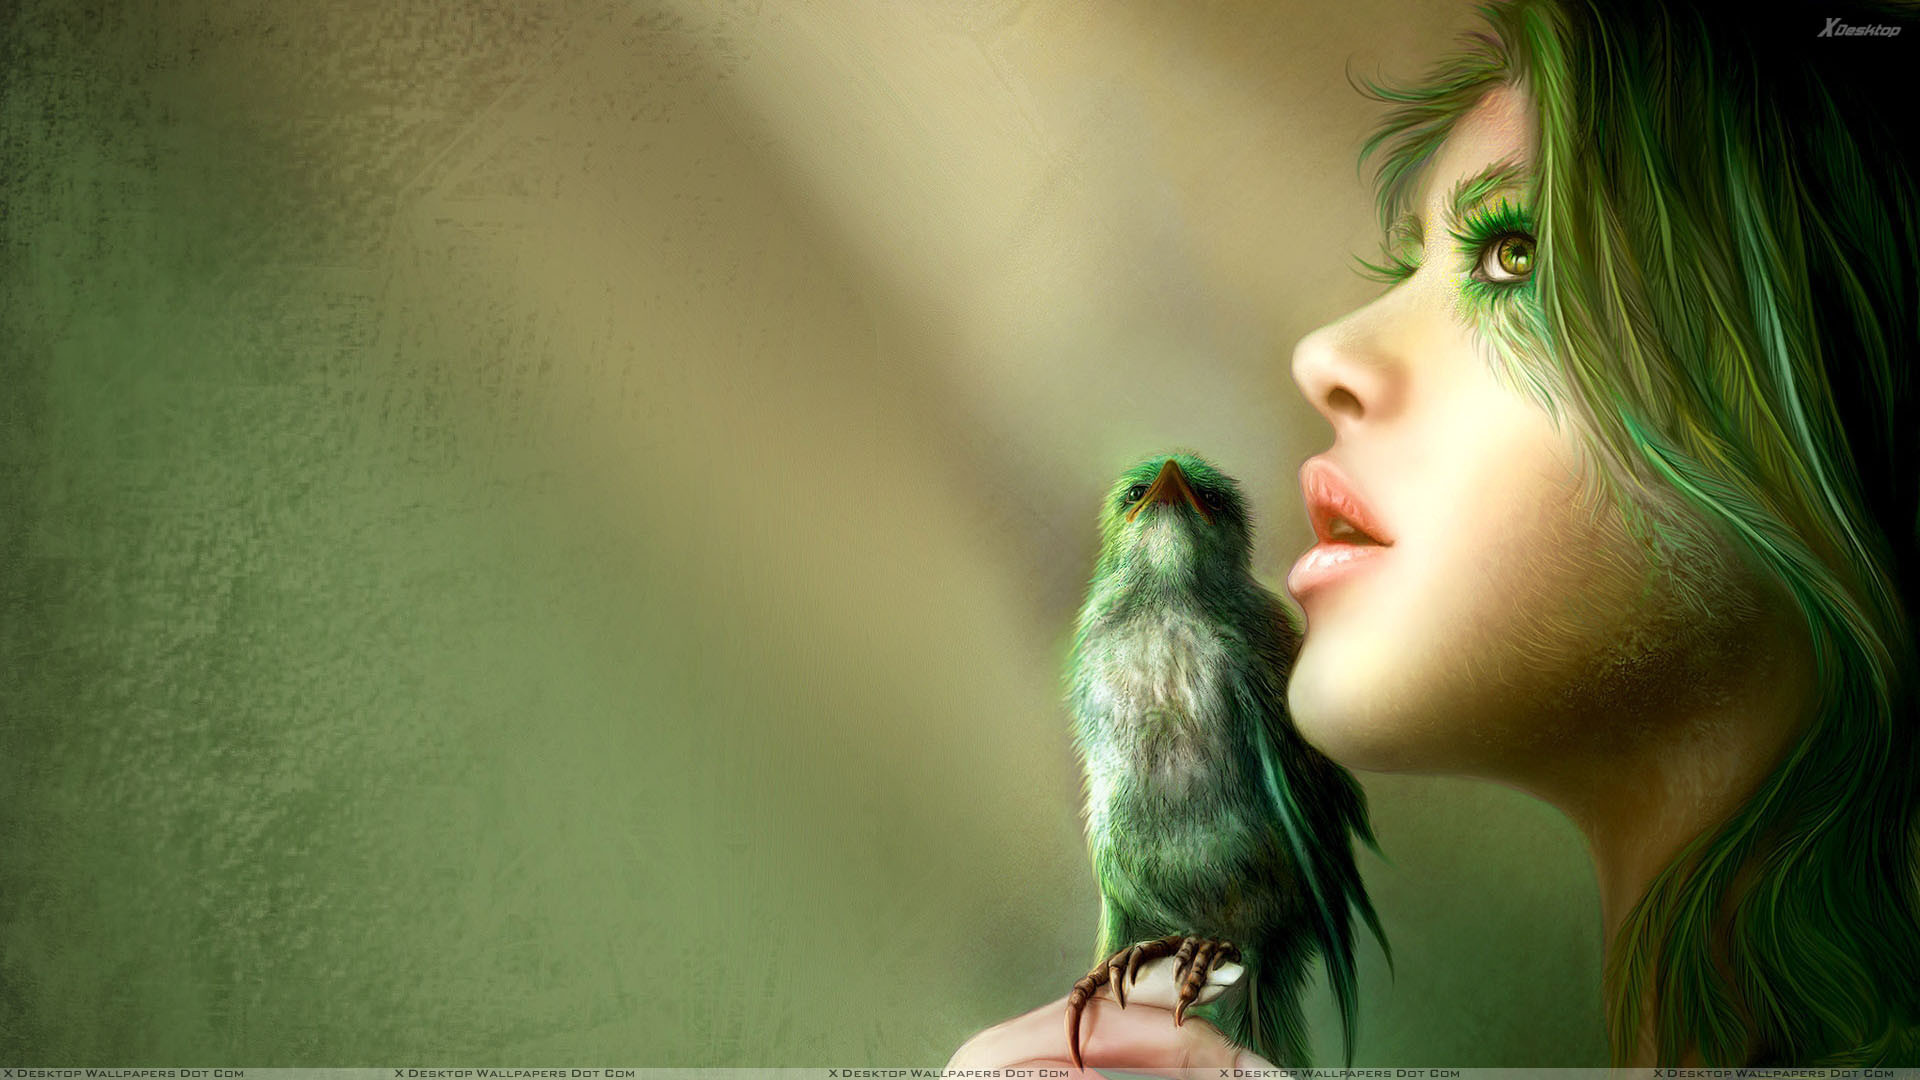 1920x1080 ... Girl Side Face Wallpaper 3D Girl Side Face Closeup N Bird On Hand  Wallpaper ...